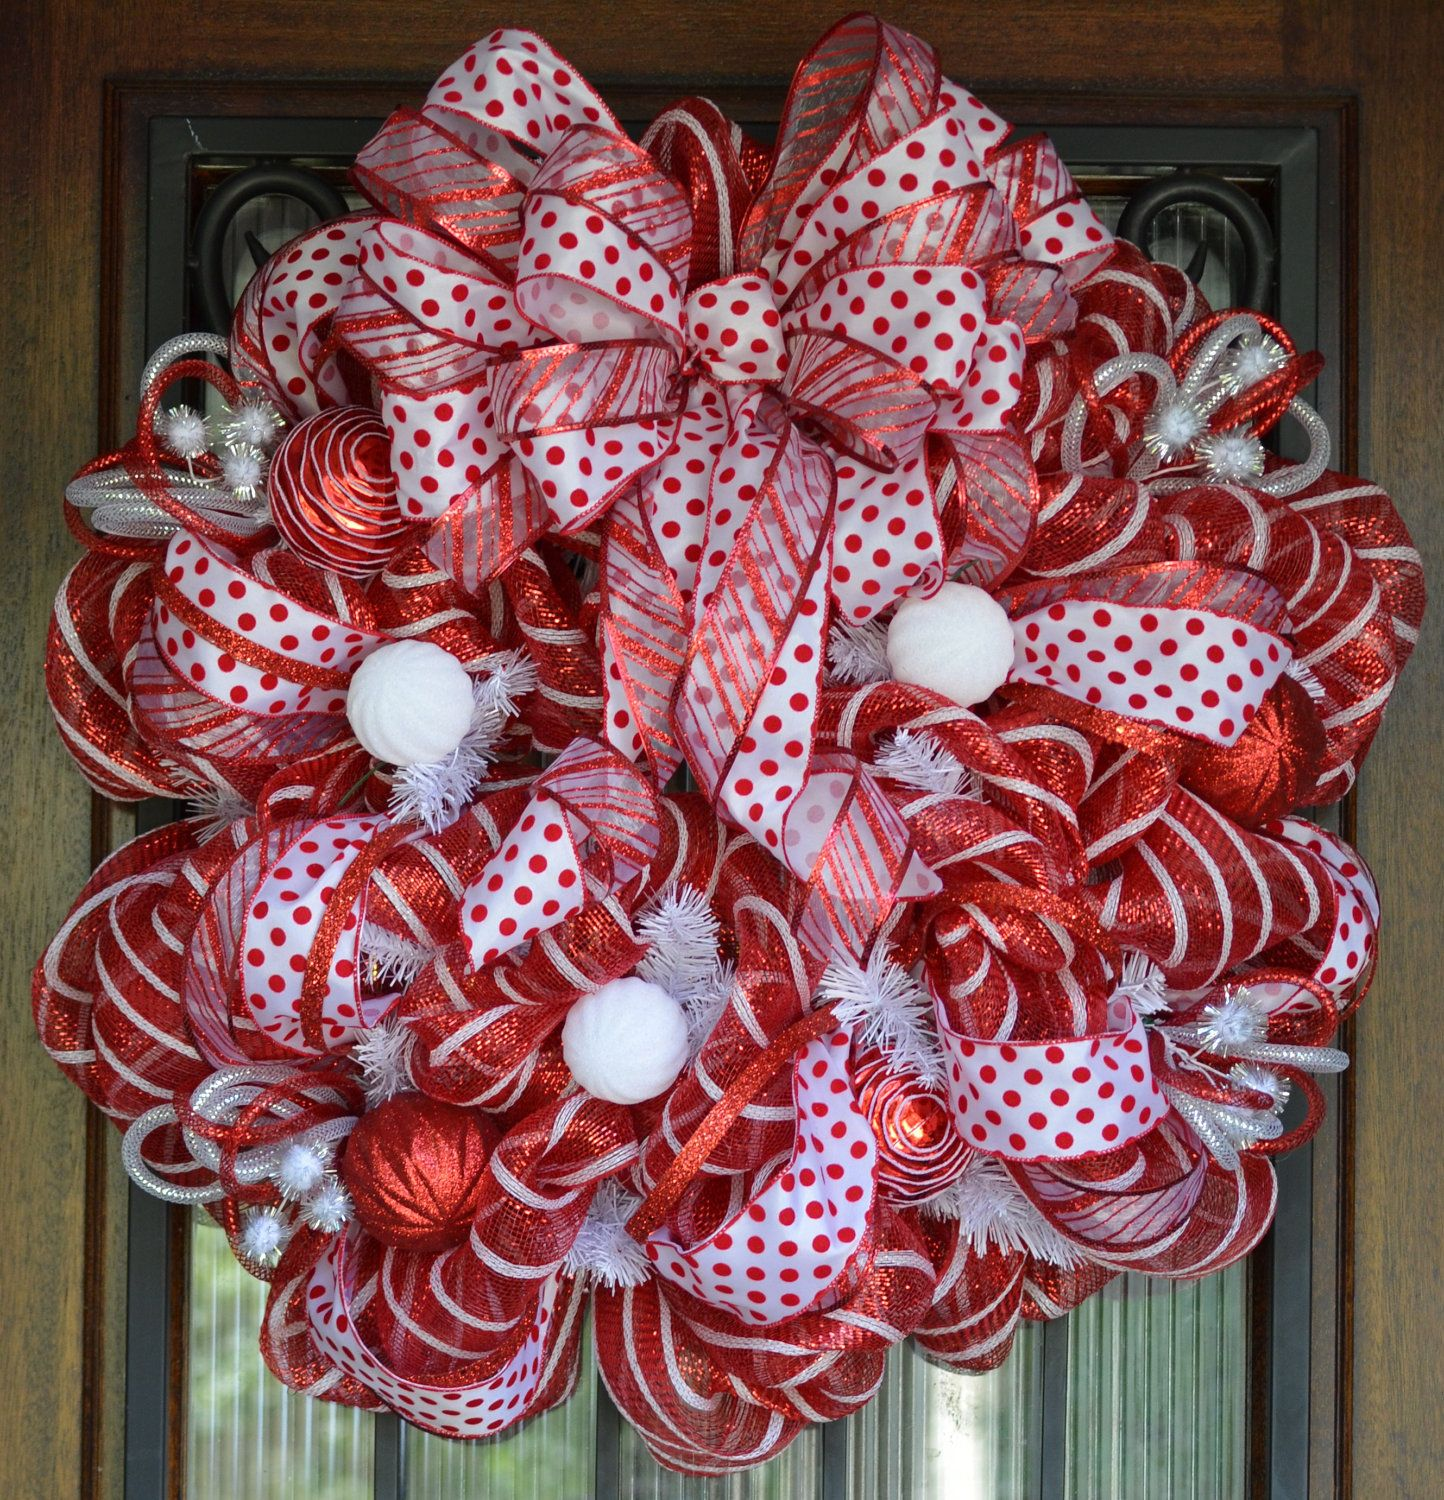 Mesh Wreaths Red And White Christmas Deco Mesh Wreath By Joowabean